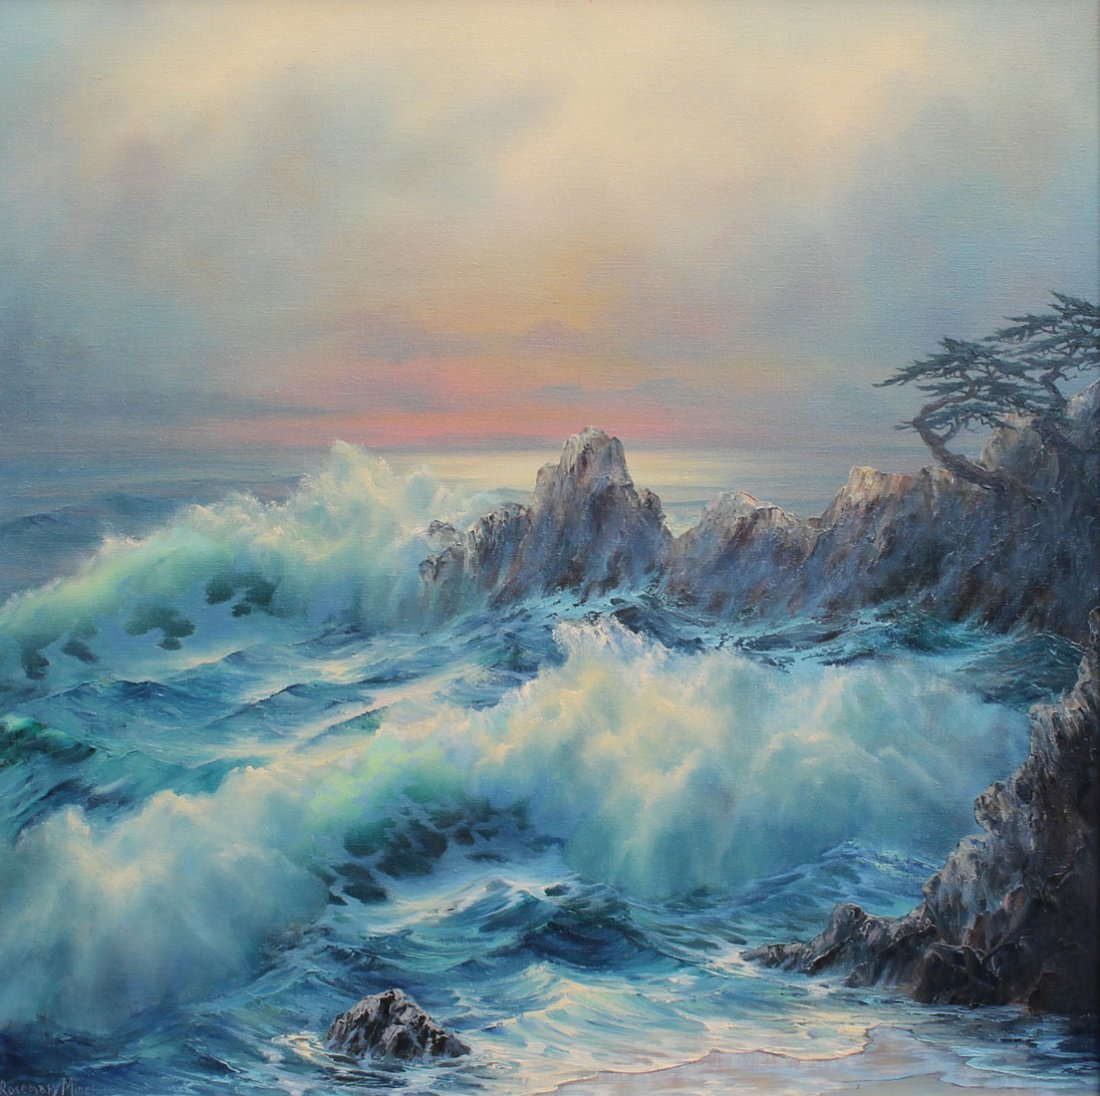 ROSEMARY MINER CALIFORNIA COAST PAINTING